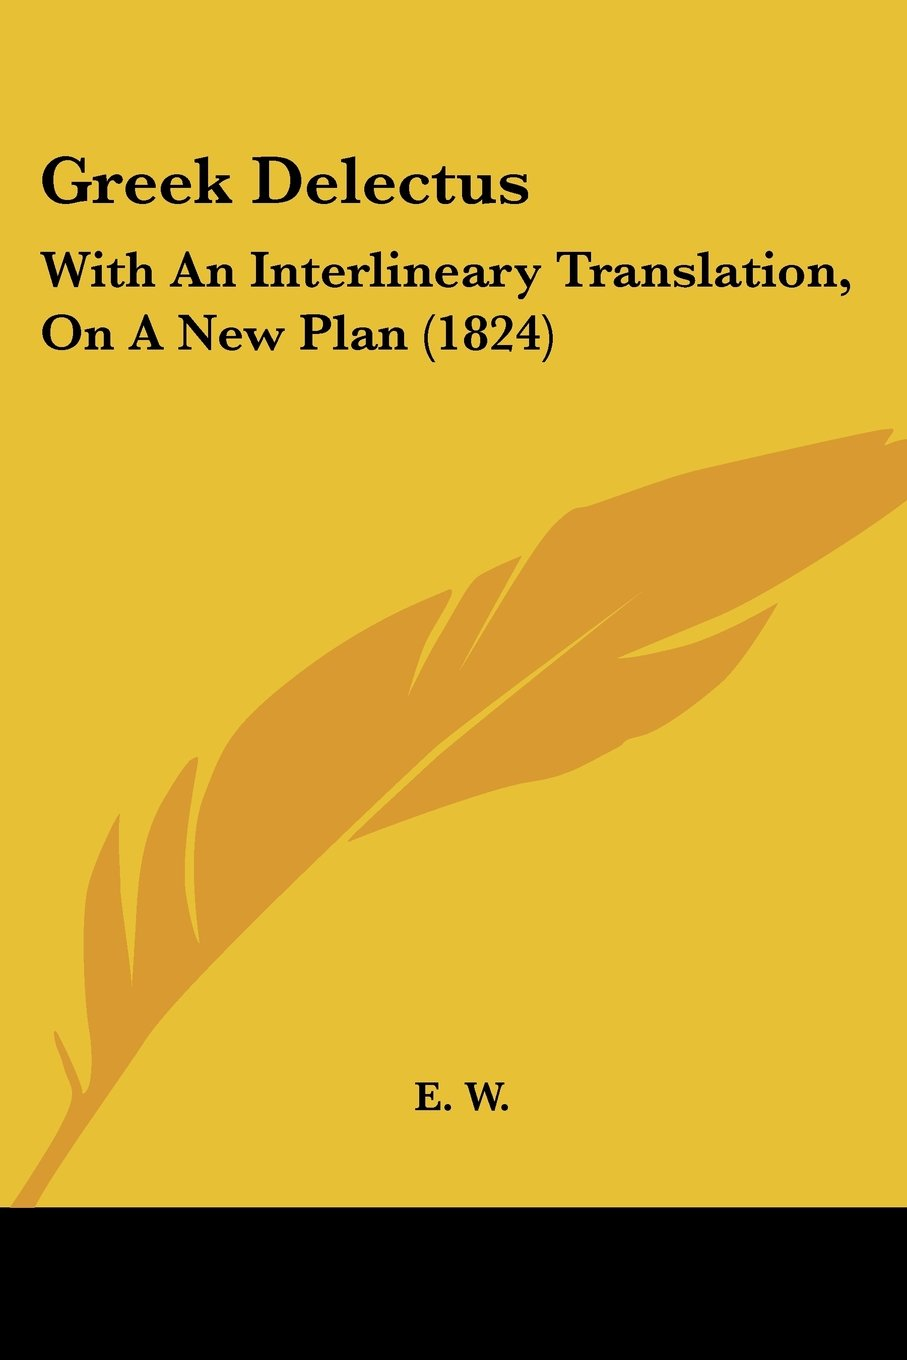 Download Greek Delectus: With An Interlineary Translation, On A New Plan (1824) (German Edition) ebook